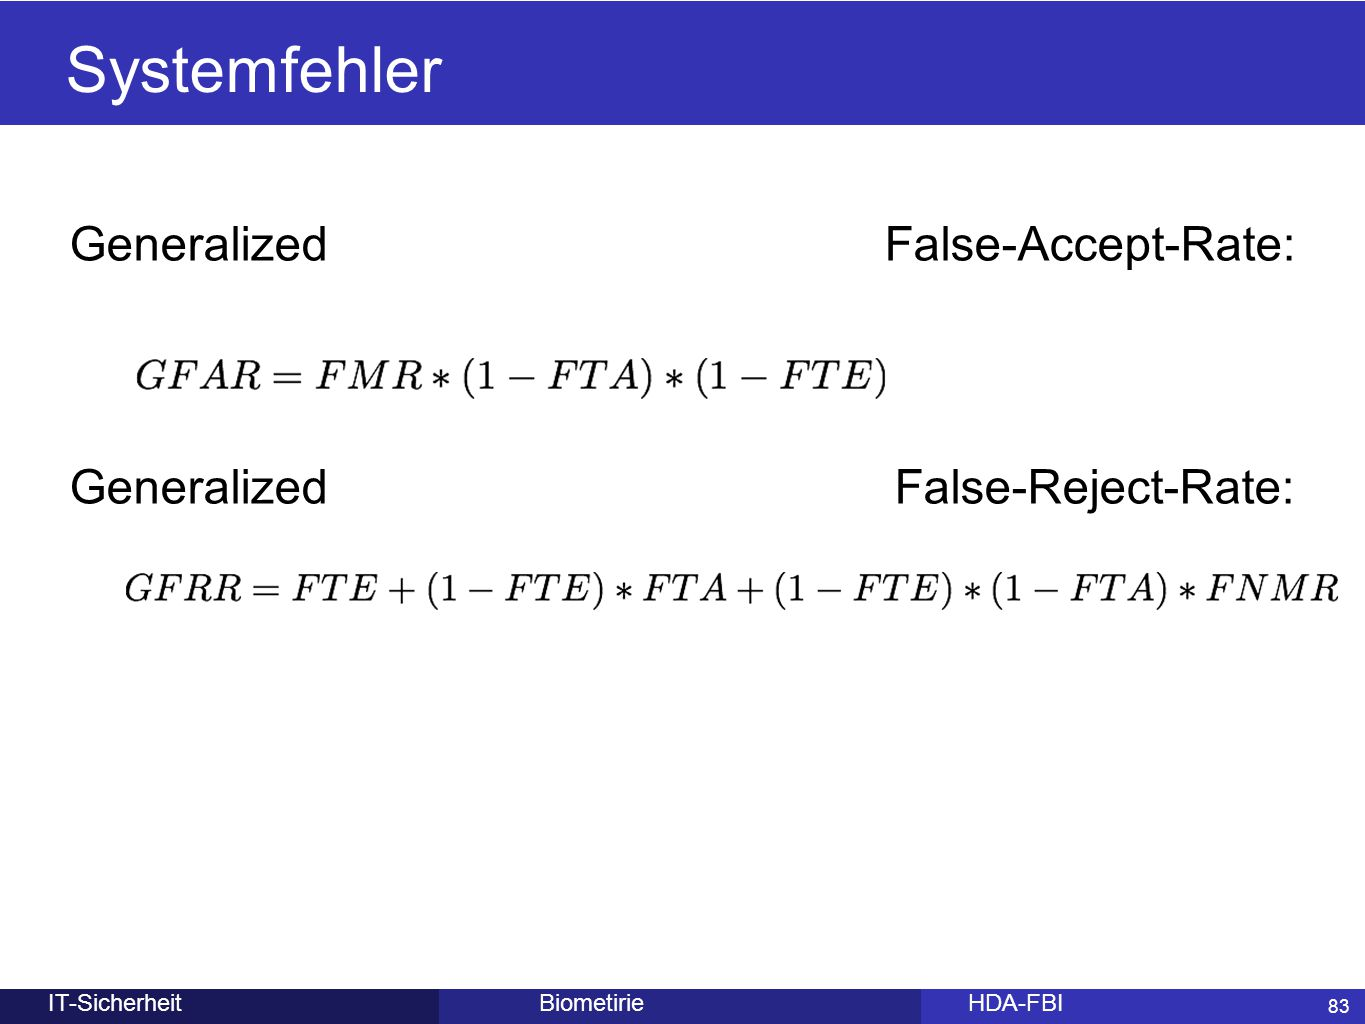 83 BiometirieHDA-FBIIT-Sicherheit Systemfehler Generalized False-Accept-Rate: Generalized False-Reject-Rate: 83